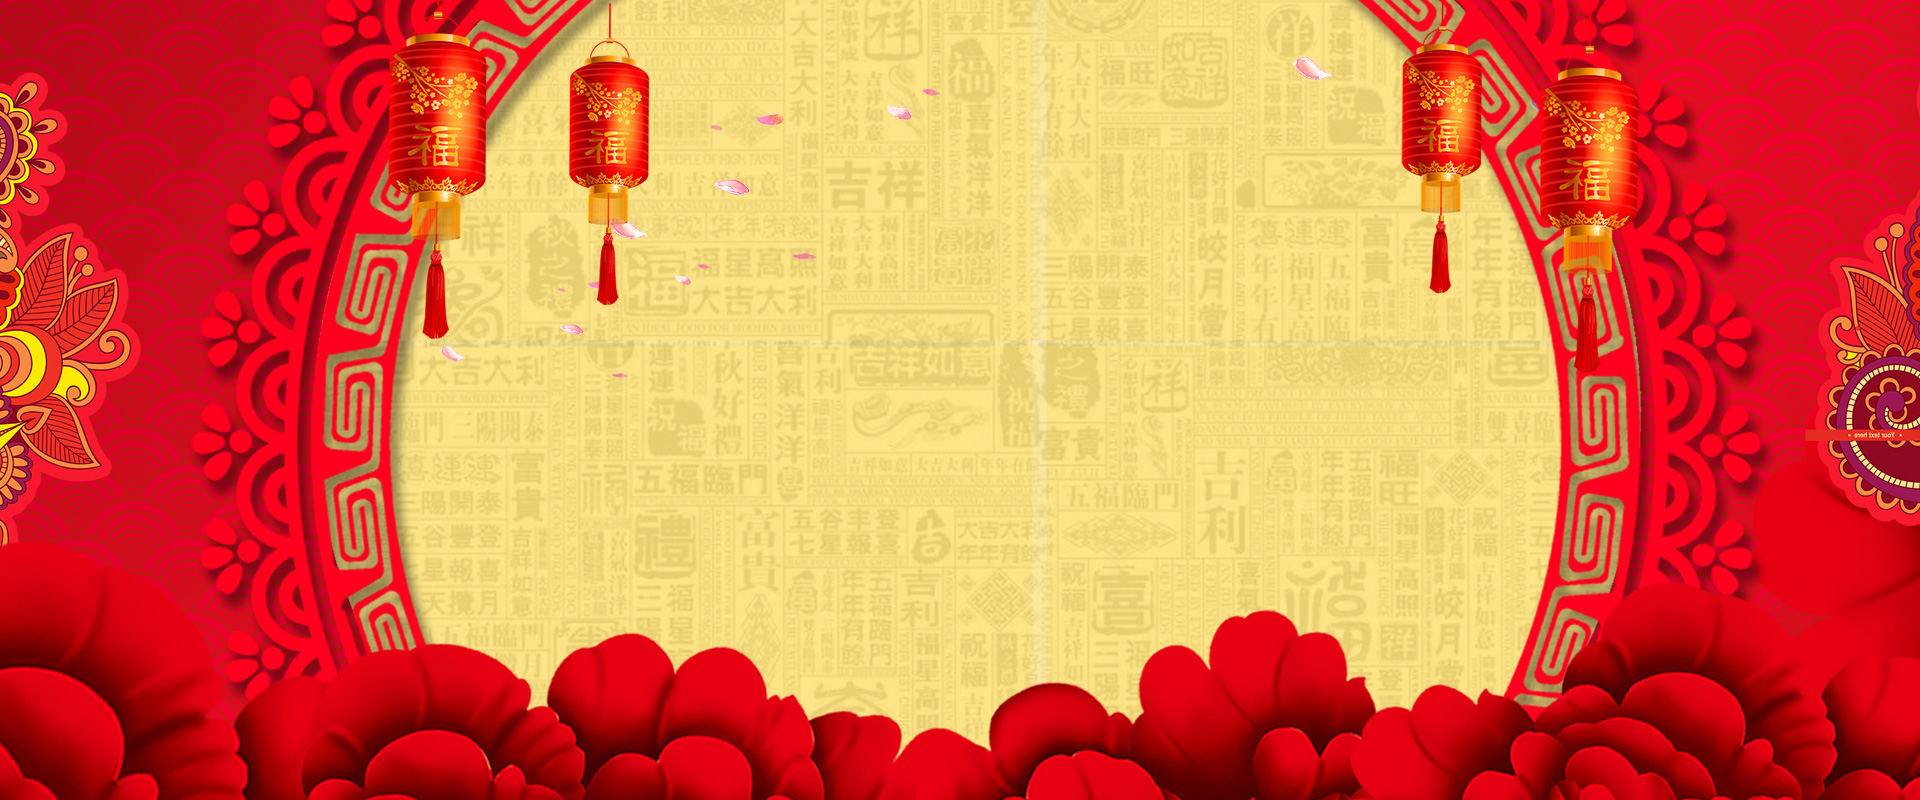 traditional chinese new year festive red chinese style poster background  celebration new year